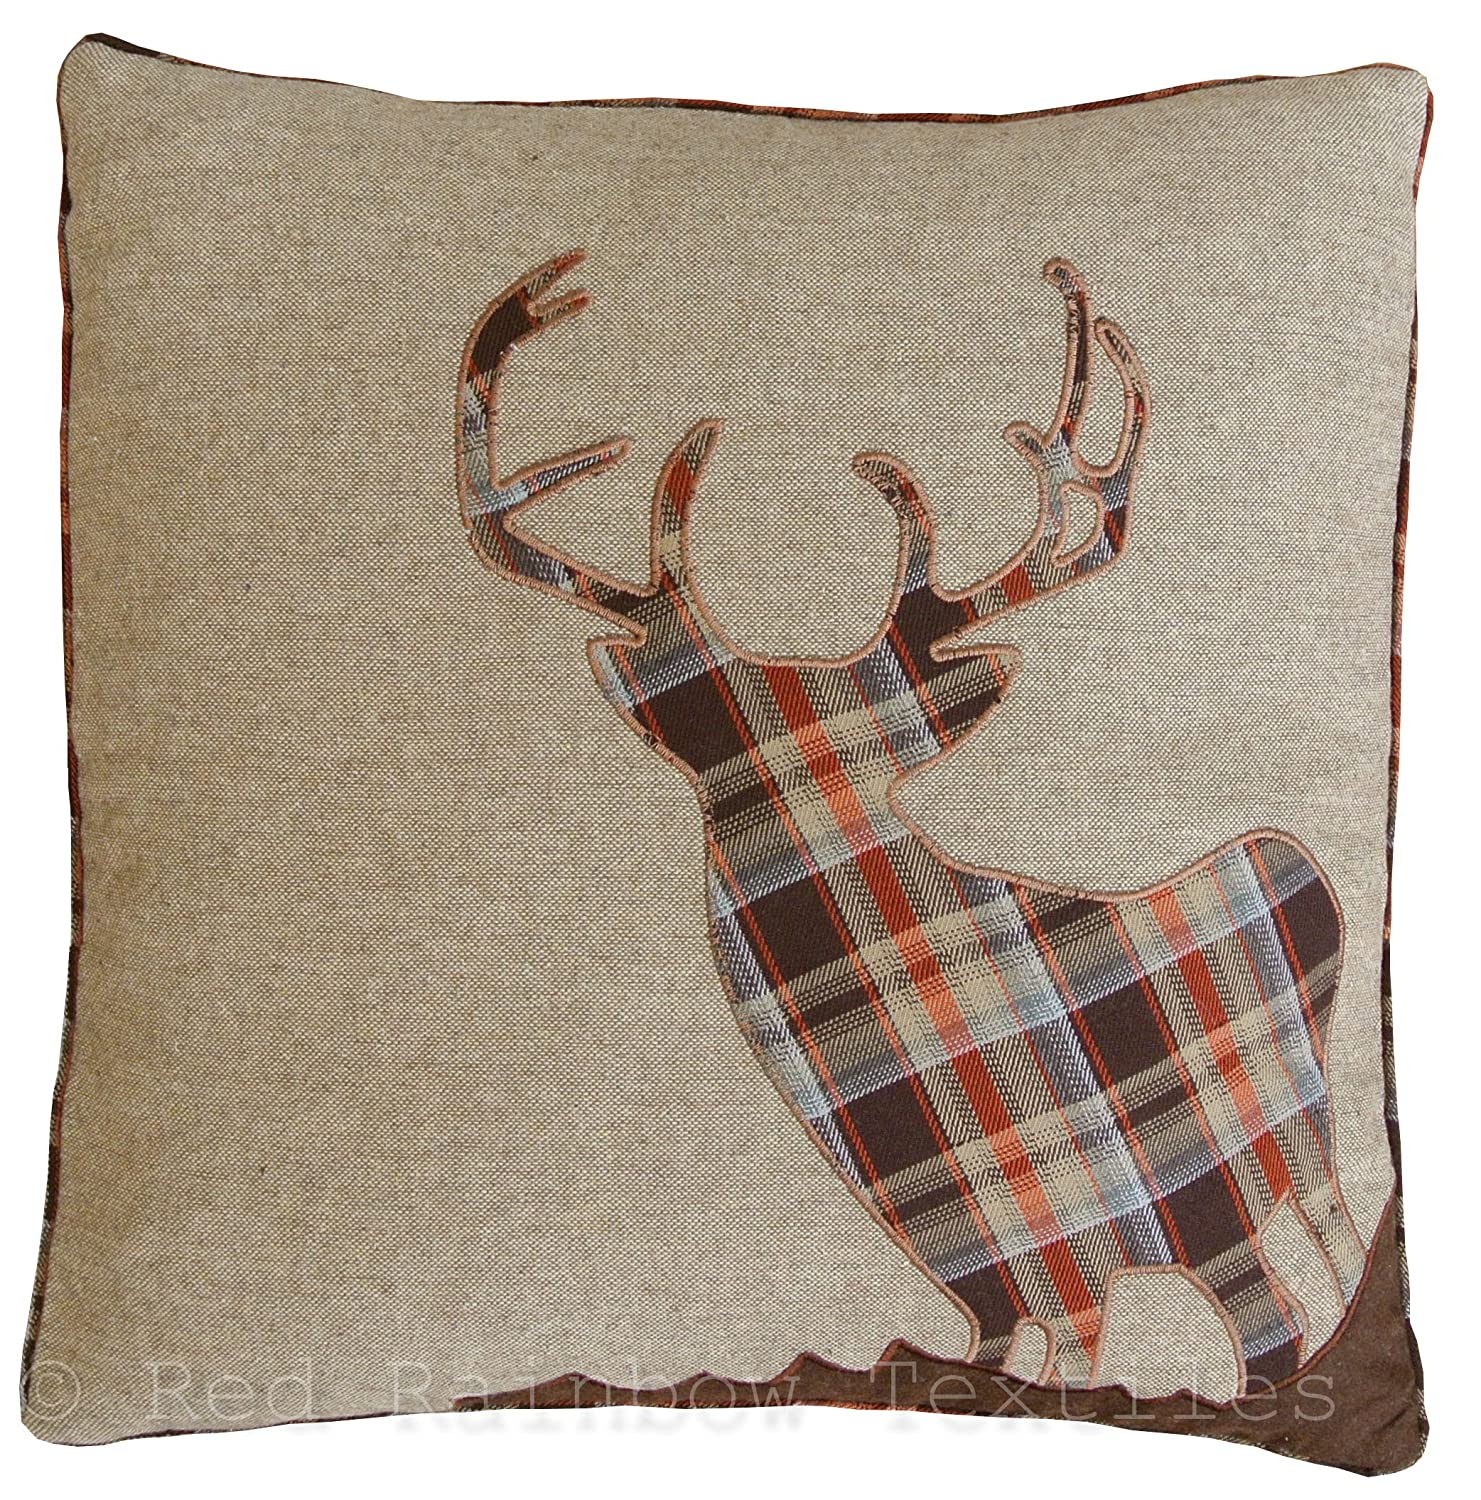 covers deer geometric pillows with cover cushion origami gallery gold pillow throw blanket